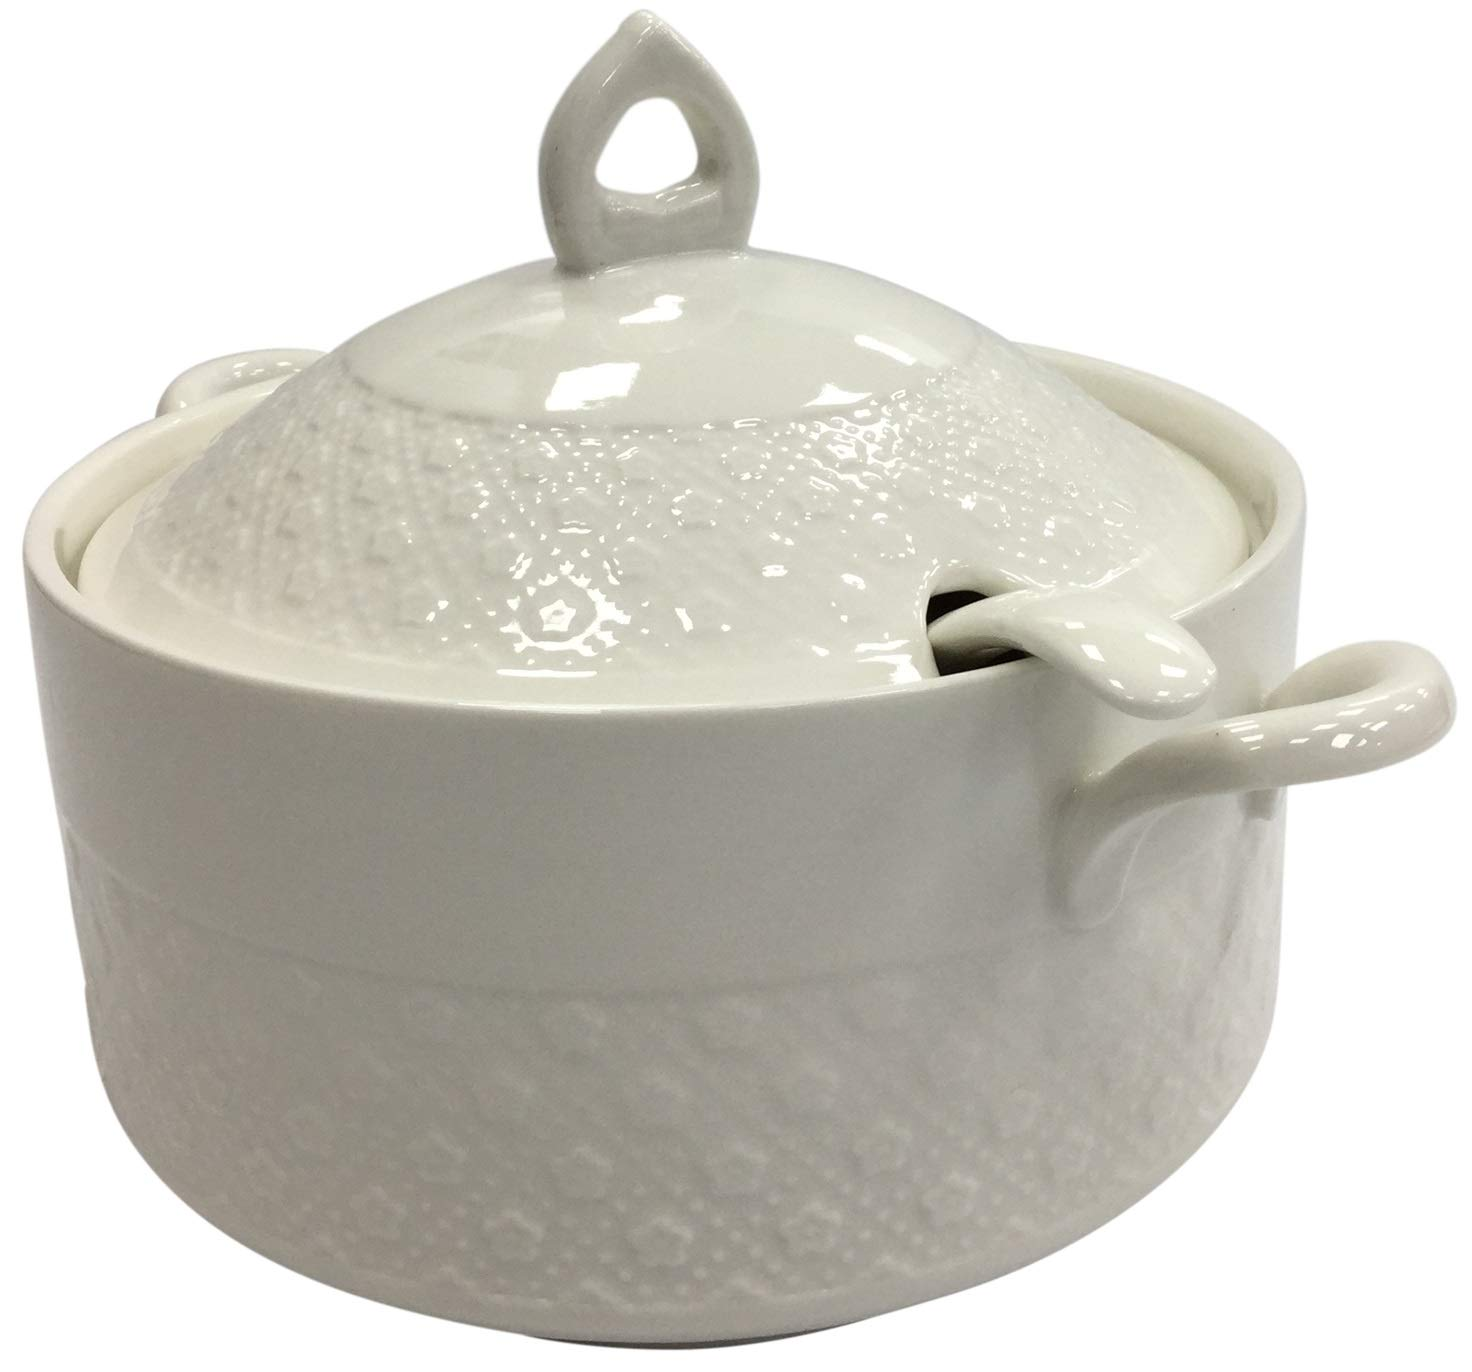 Porcelain Soup Tureen Bowl with Handles 2L White Classic with Matching Ladle